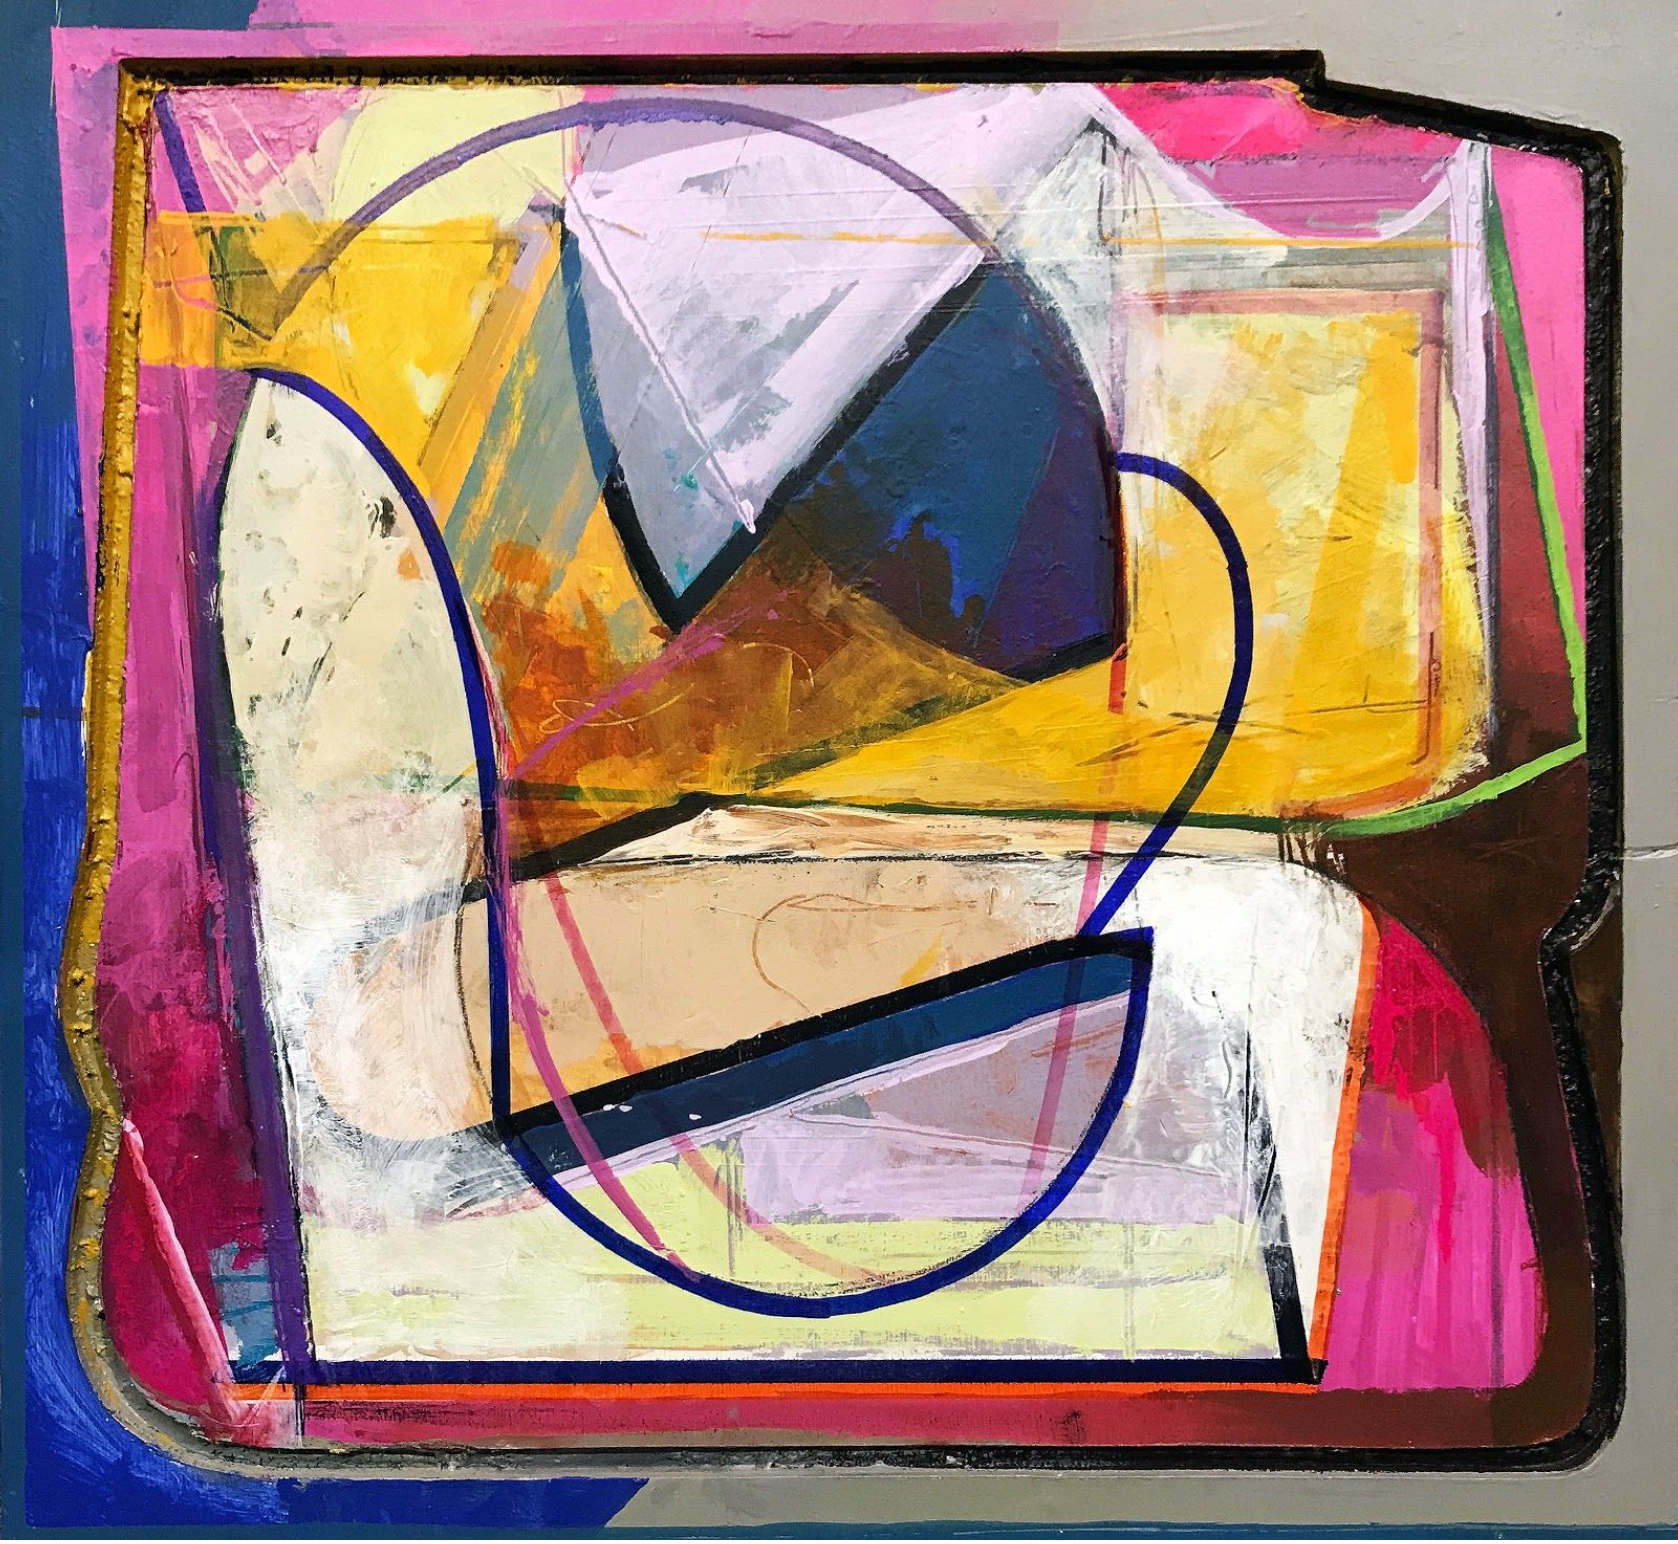 A La Lutes,  Mixed media on panel, 17.5 x 19, $800